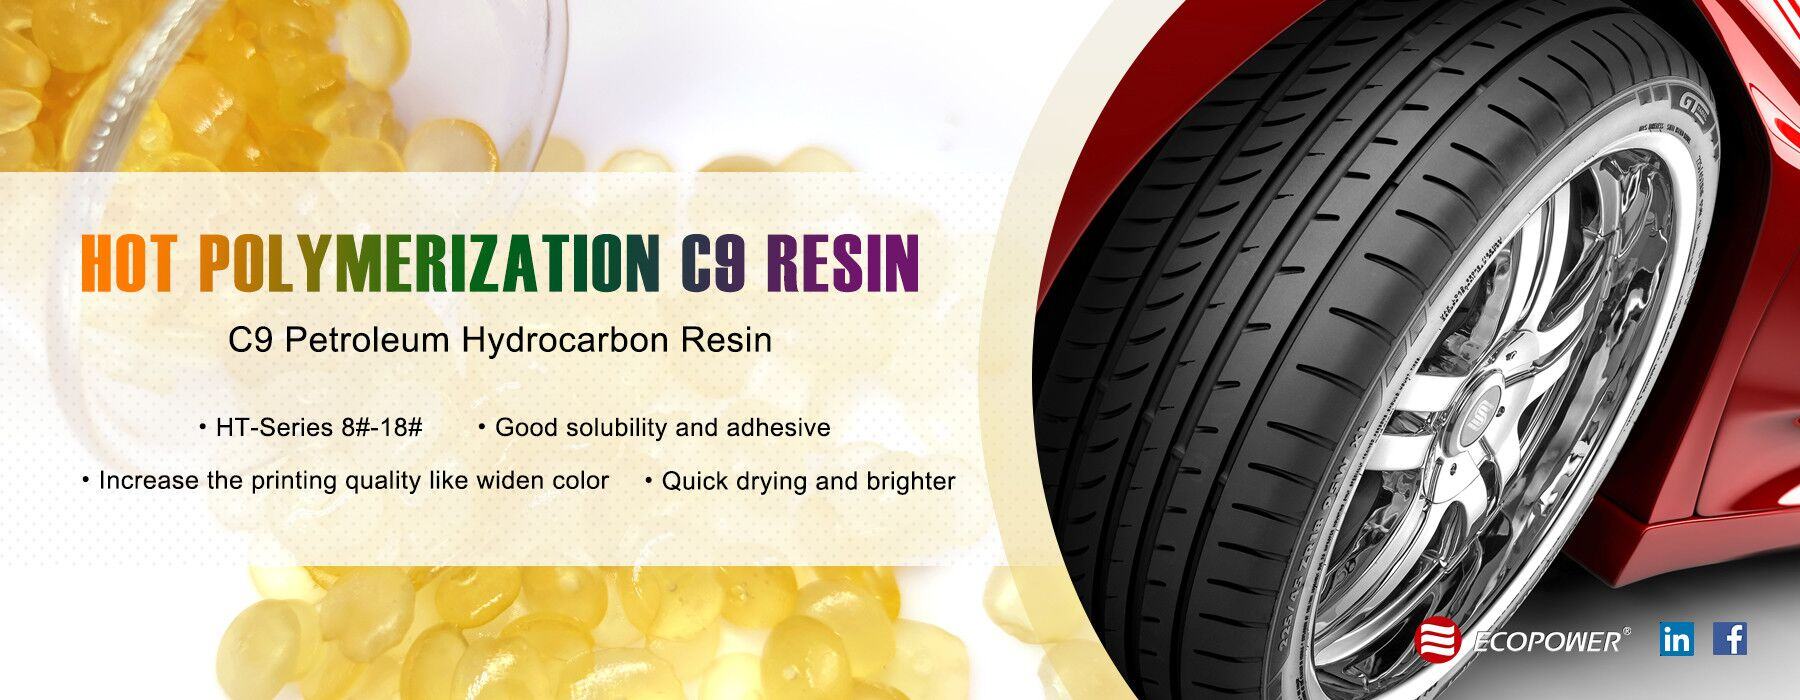 Hot Polymerization Performance C9 Petroleum Resin